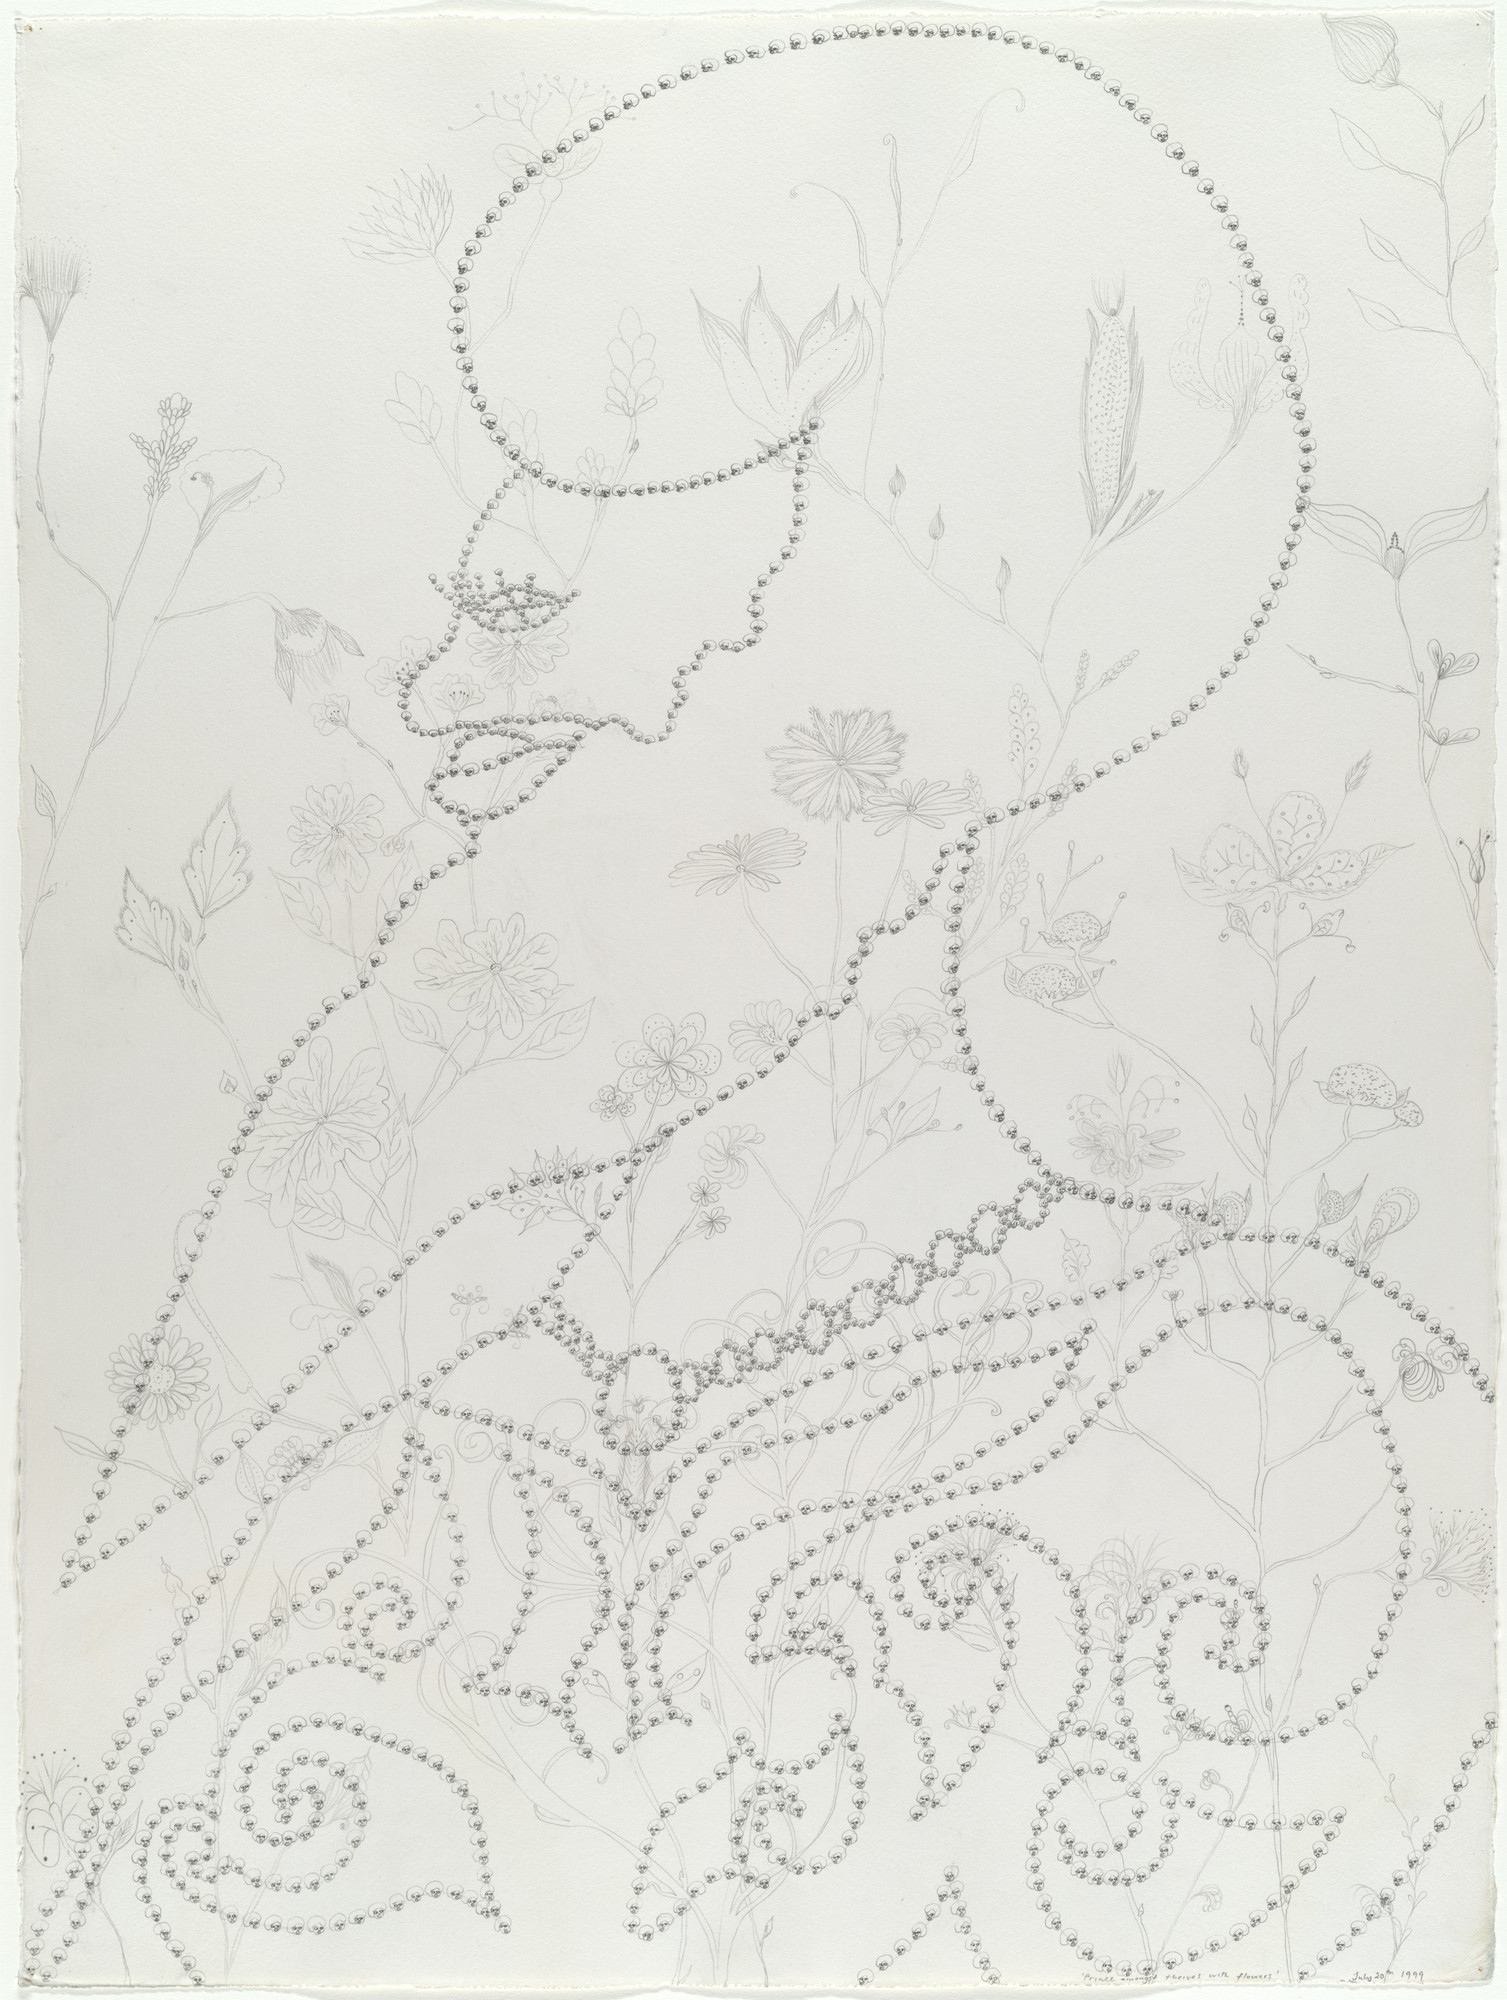 Chris Ofili. Prince Amongst Thieves with Flowers. 1999